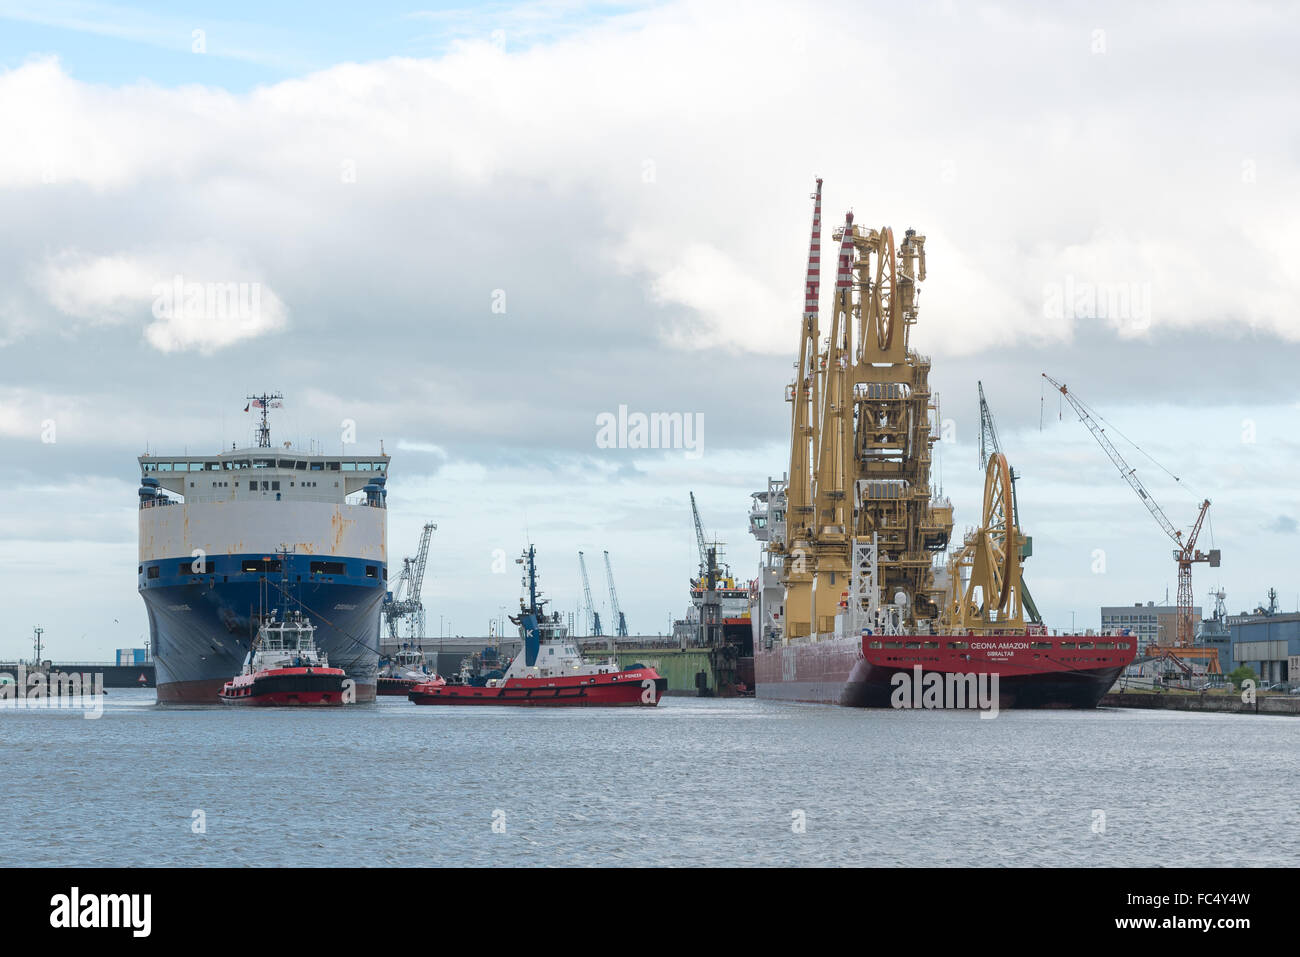 Vessel Courage and Ceona Amazon - Stock Image